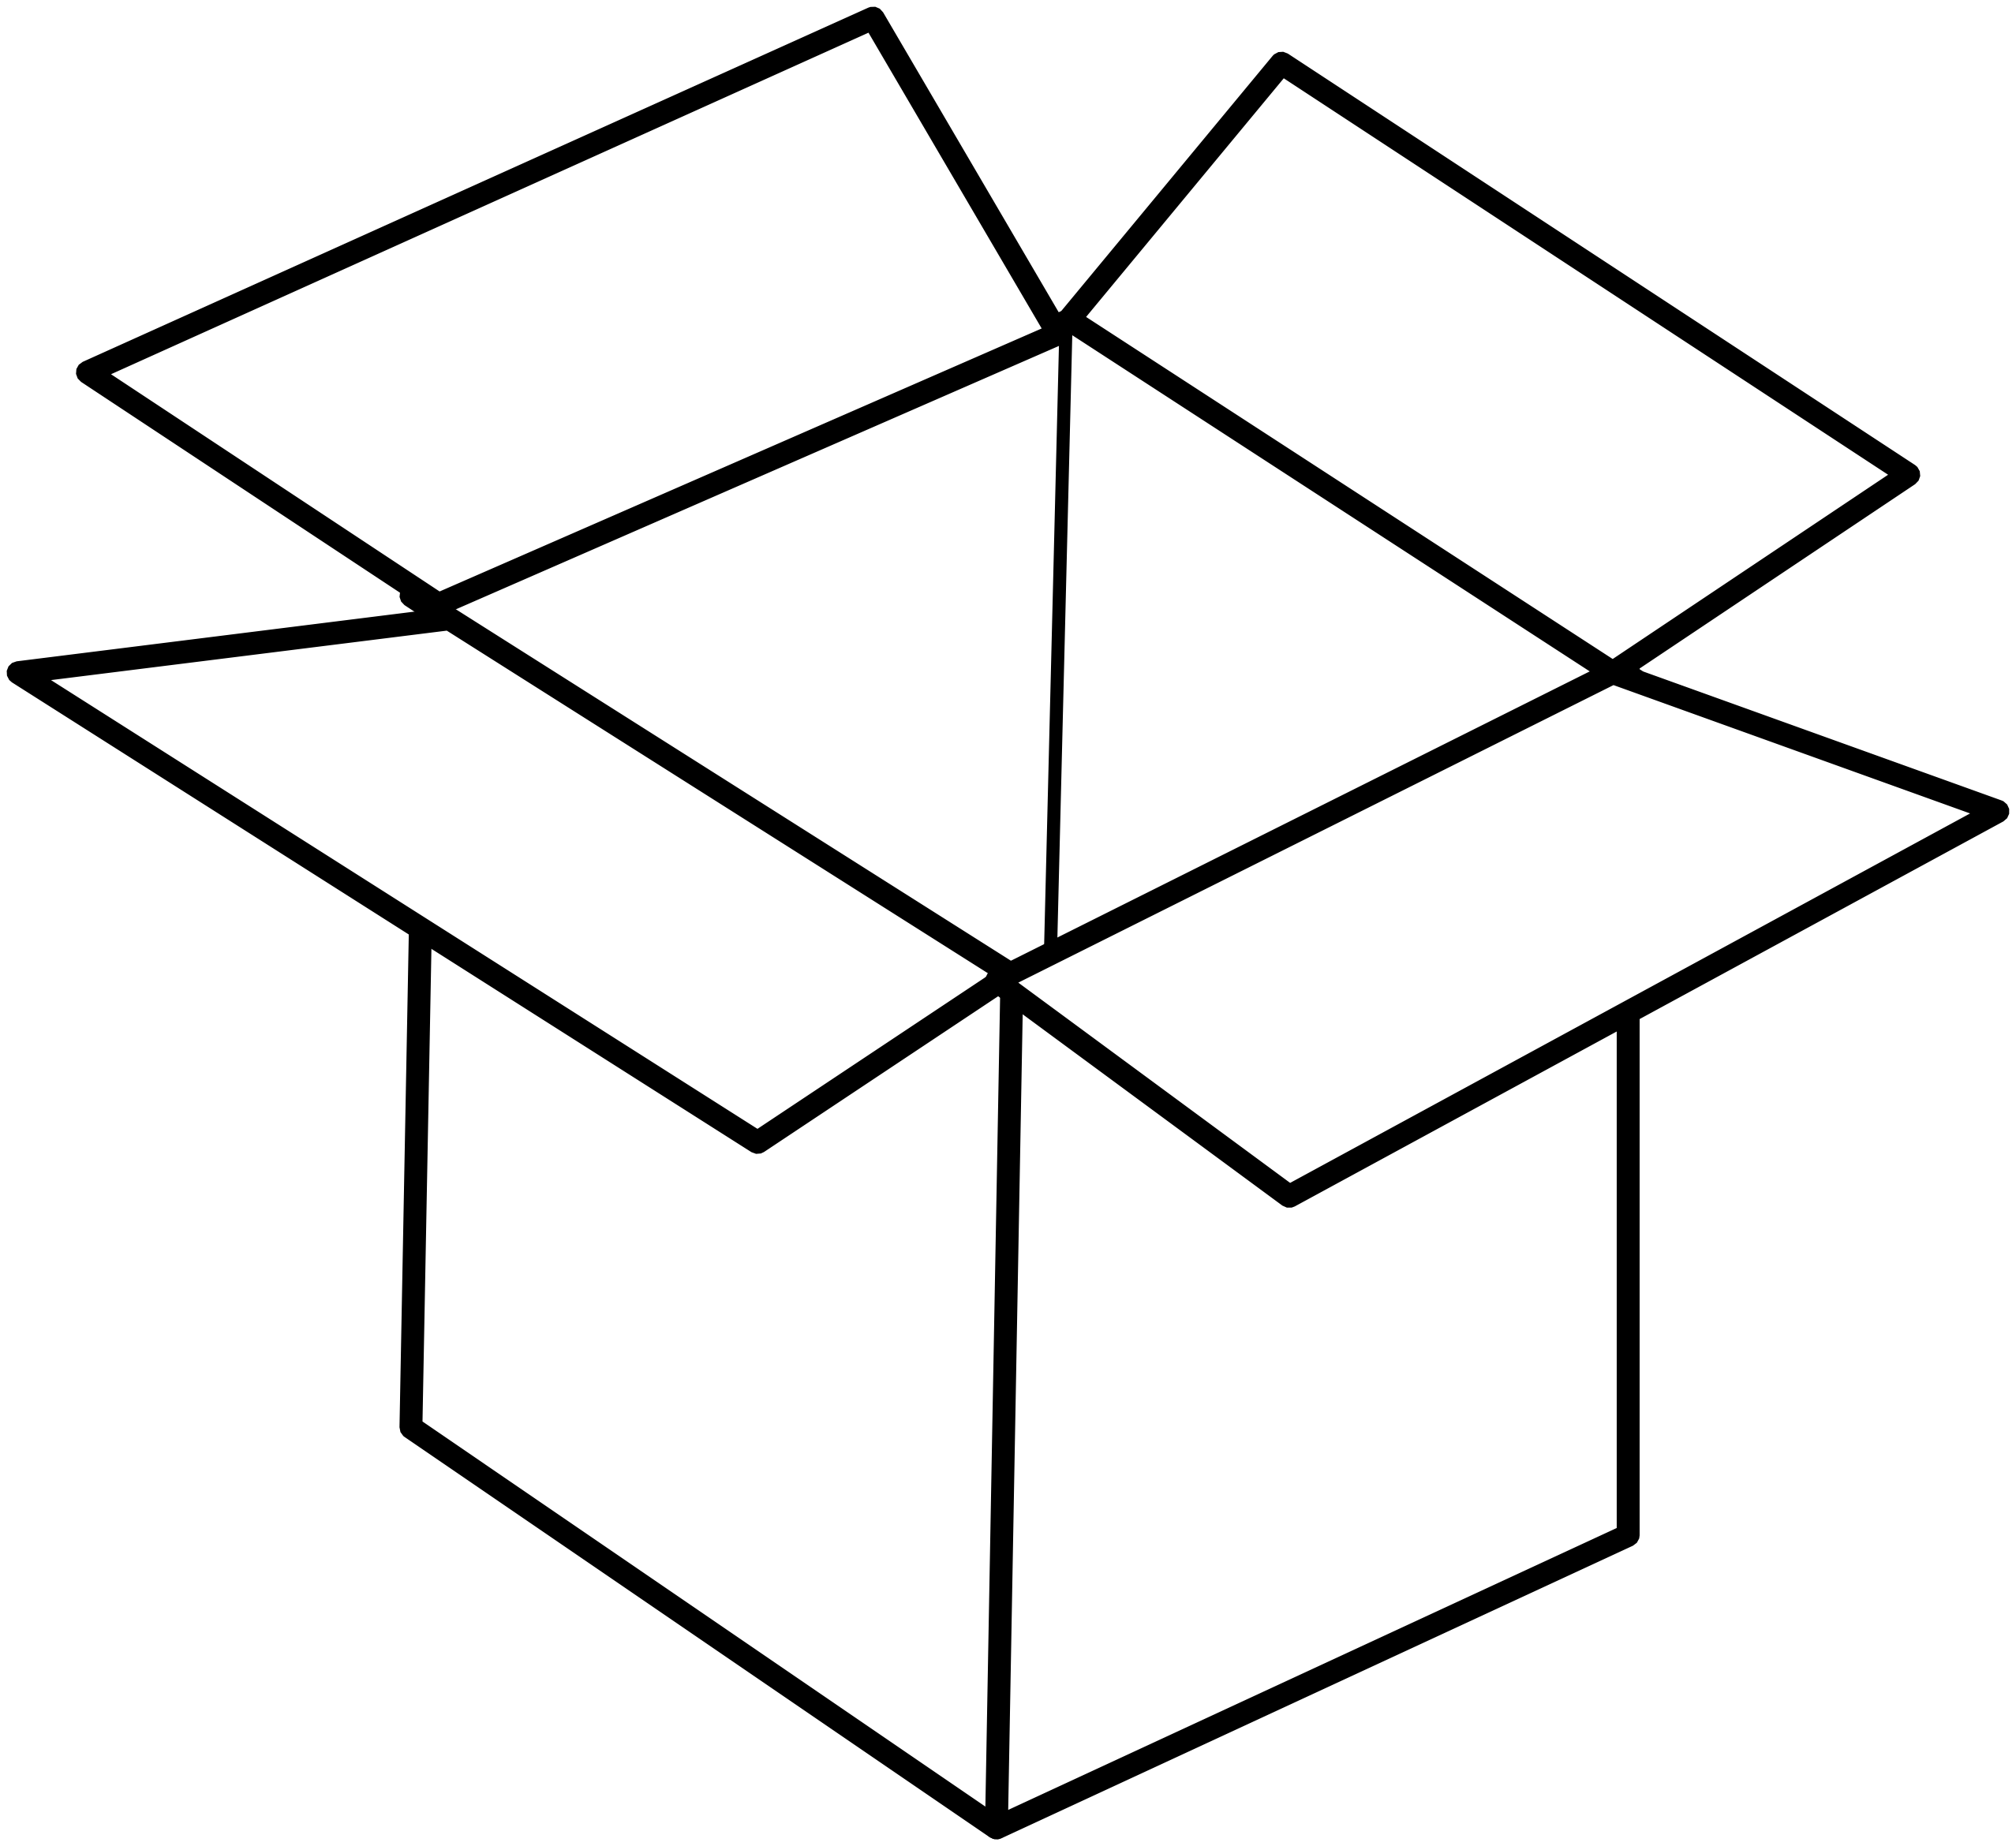 Single Line Box Art : Open box clipart panda free images